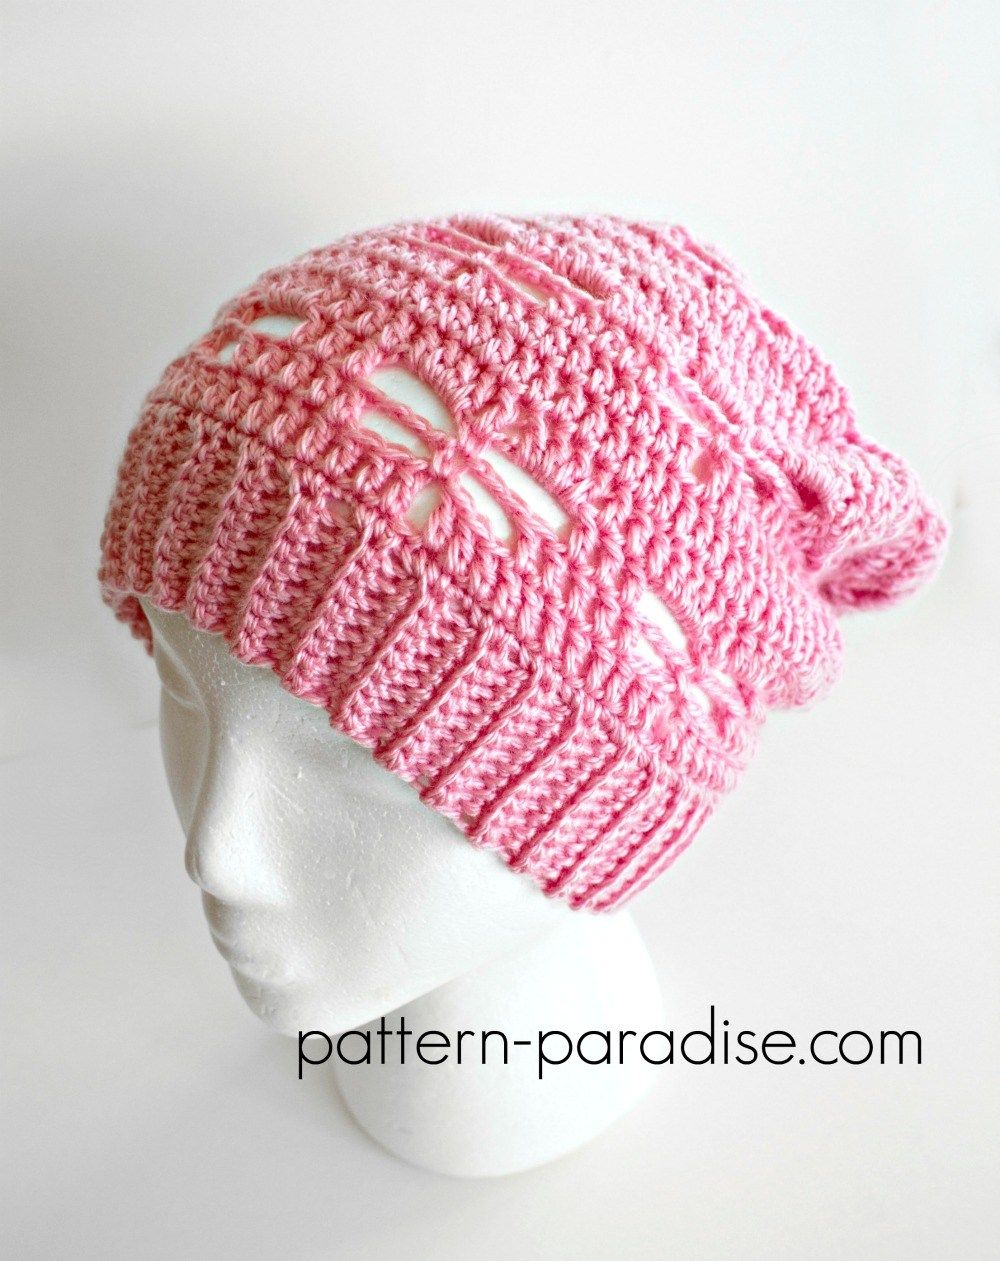 Free Crochet Pattern: Dragonfly Slouchy Hat | Hats: Men & Women by ...